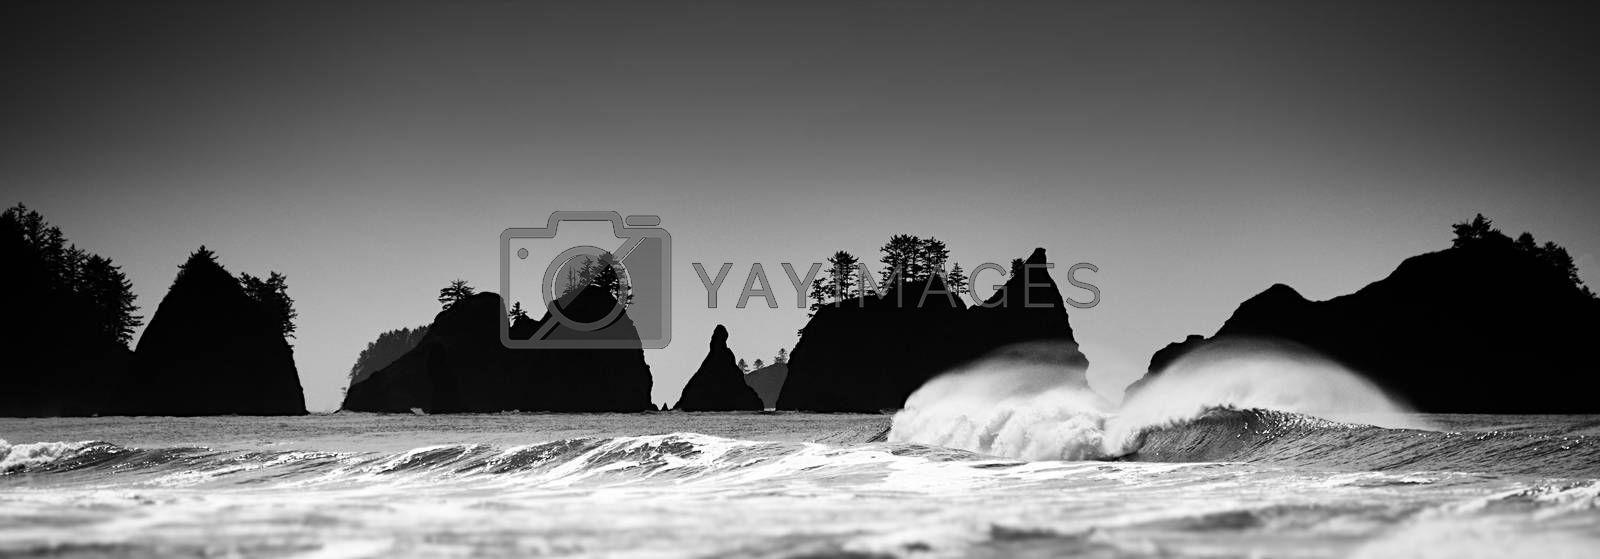 Royalty free image of Pacific Coast Seascape by nialat